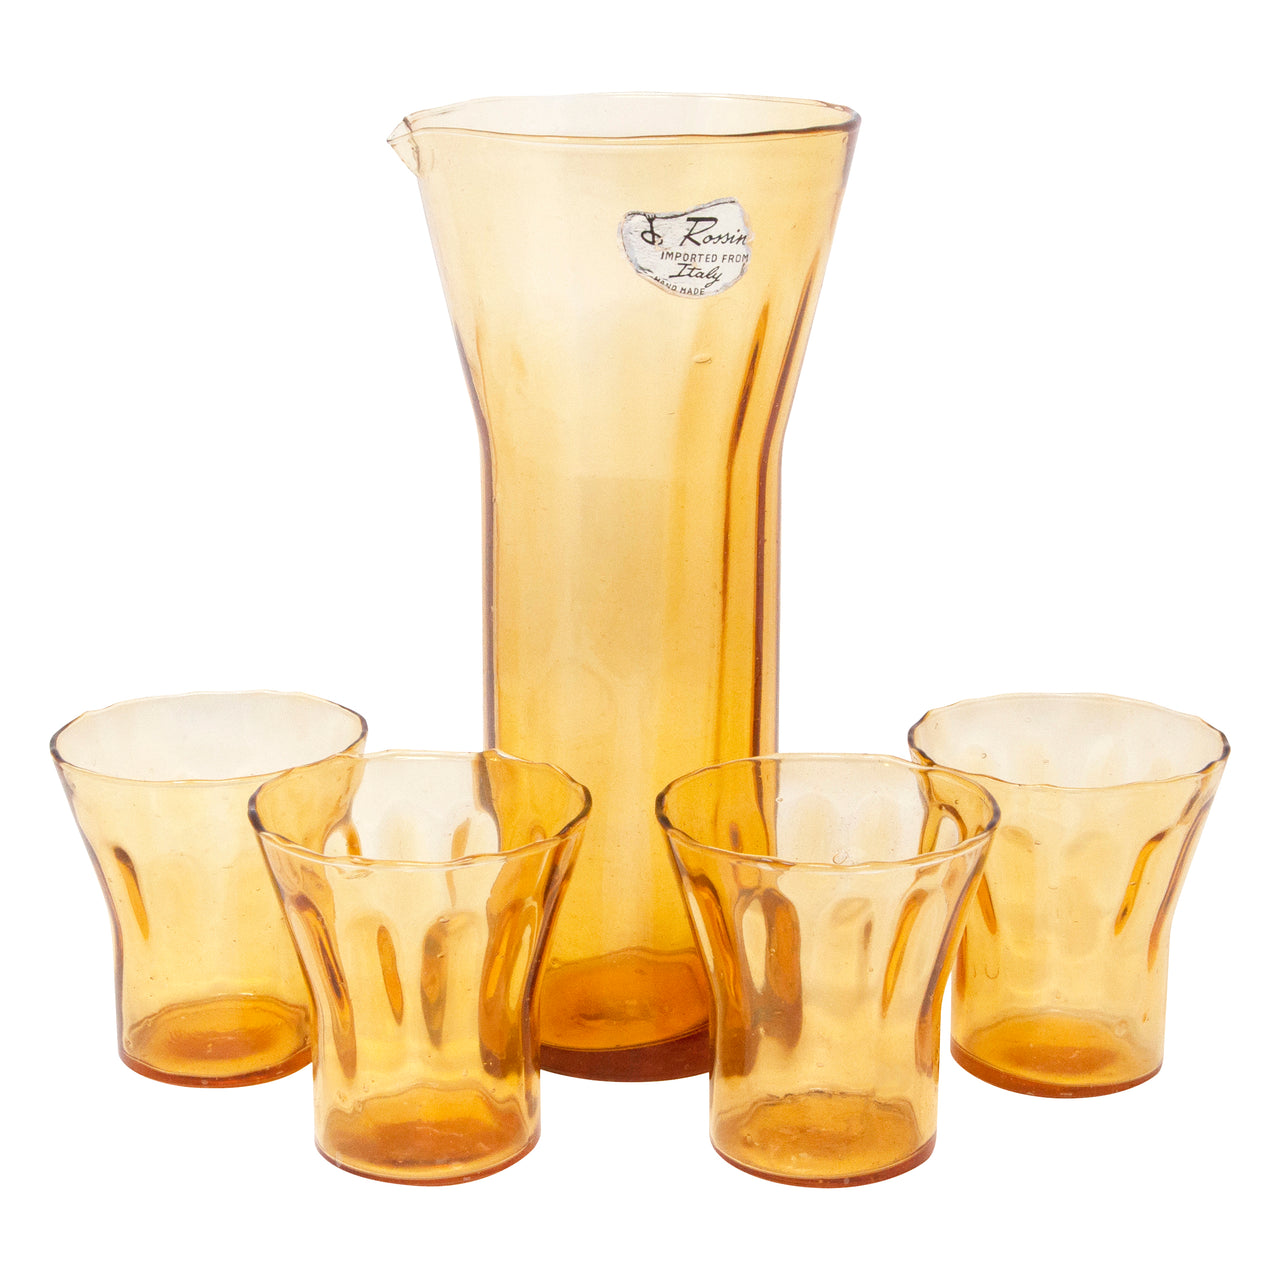 Vintage Italian Rossini Amber Cocktail Pitcher Set | The Hour Shop